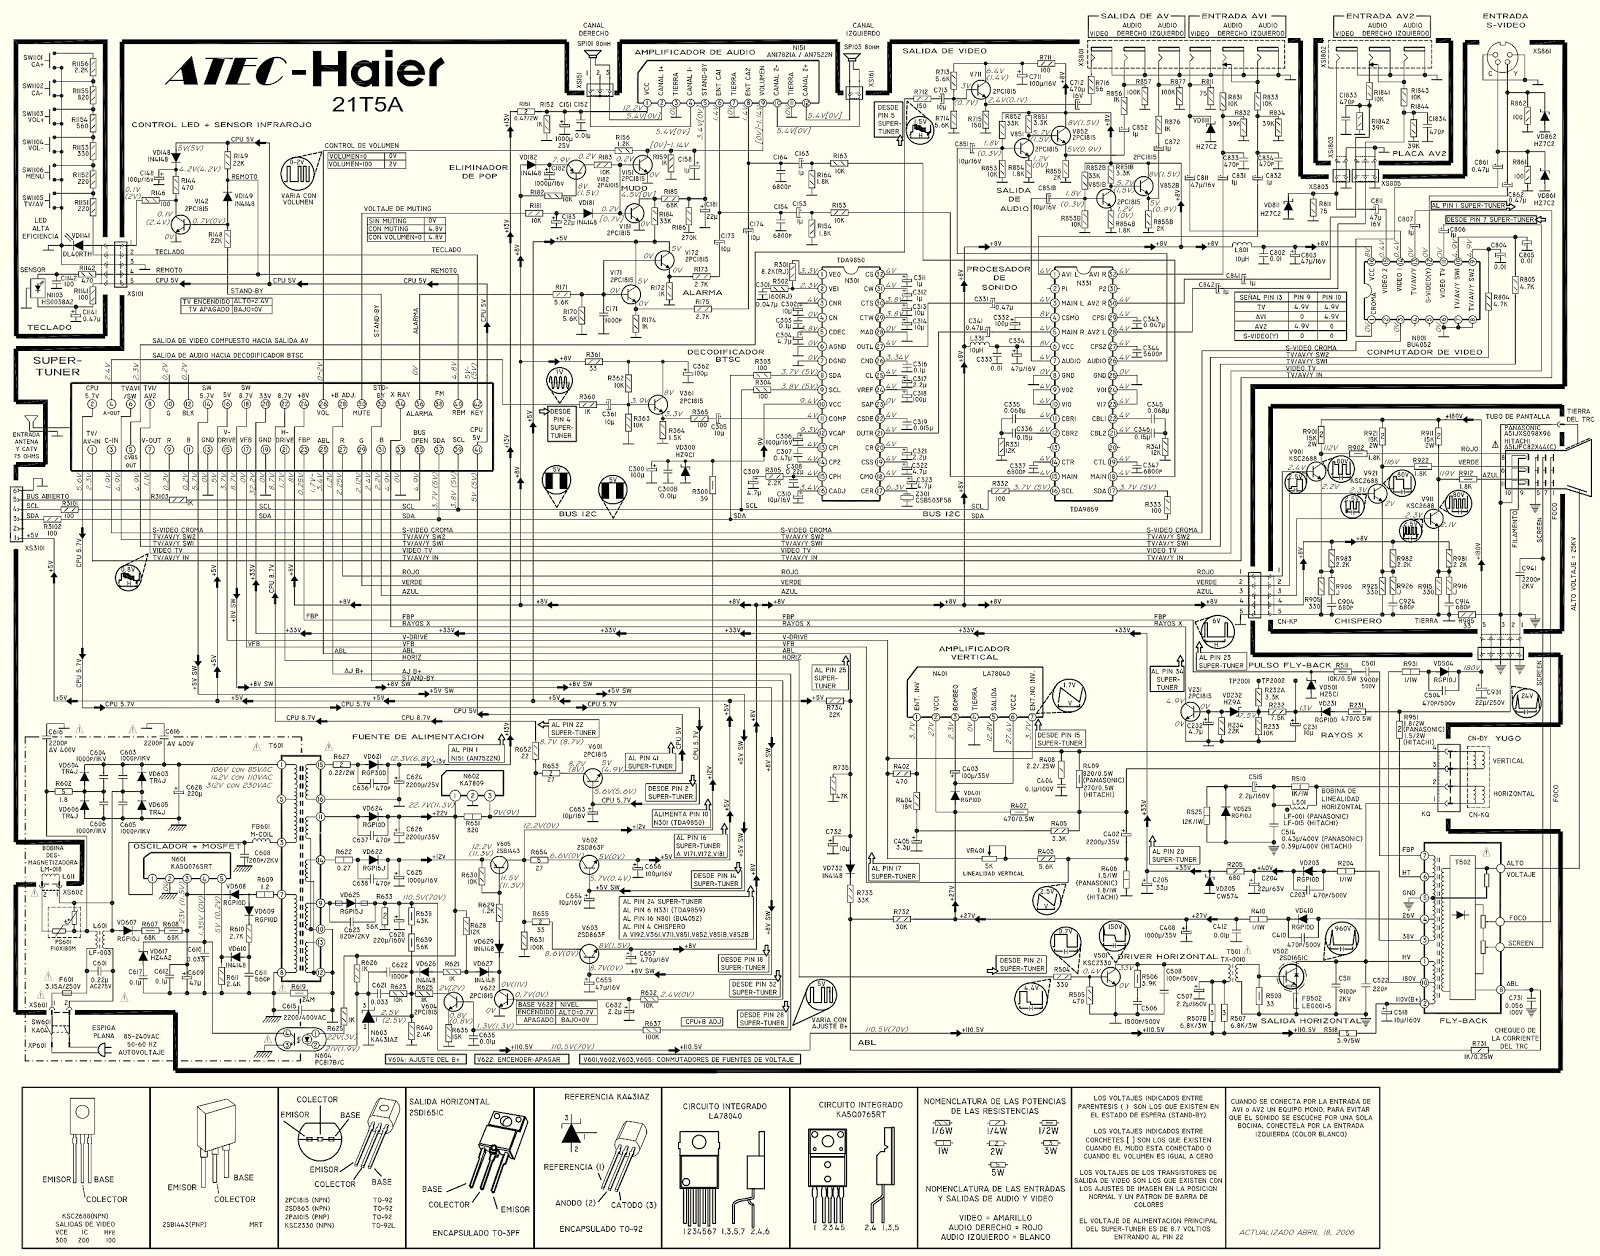 medium resolution of haier wiring diagram wiring diagram haier split ac wiring diagram haier dryer wiring diagram wiring schematic